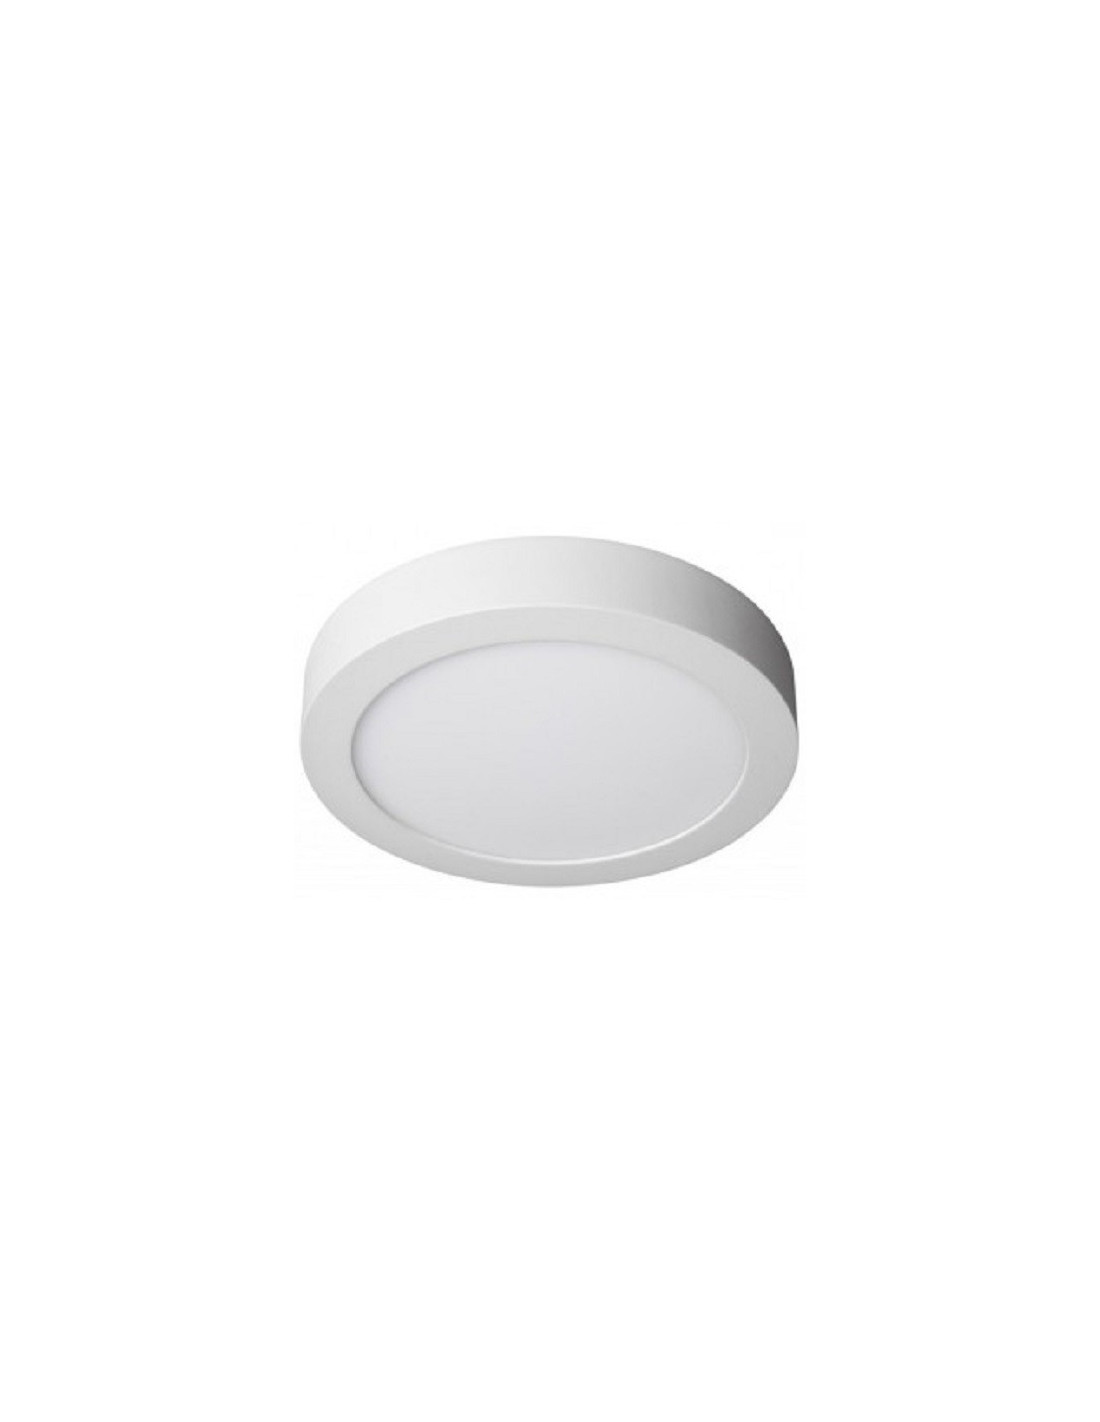 Downlight led 20w superficie edm tienda de camping online - Downlight led 20w ...